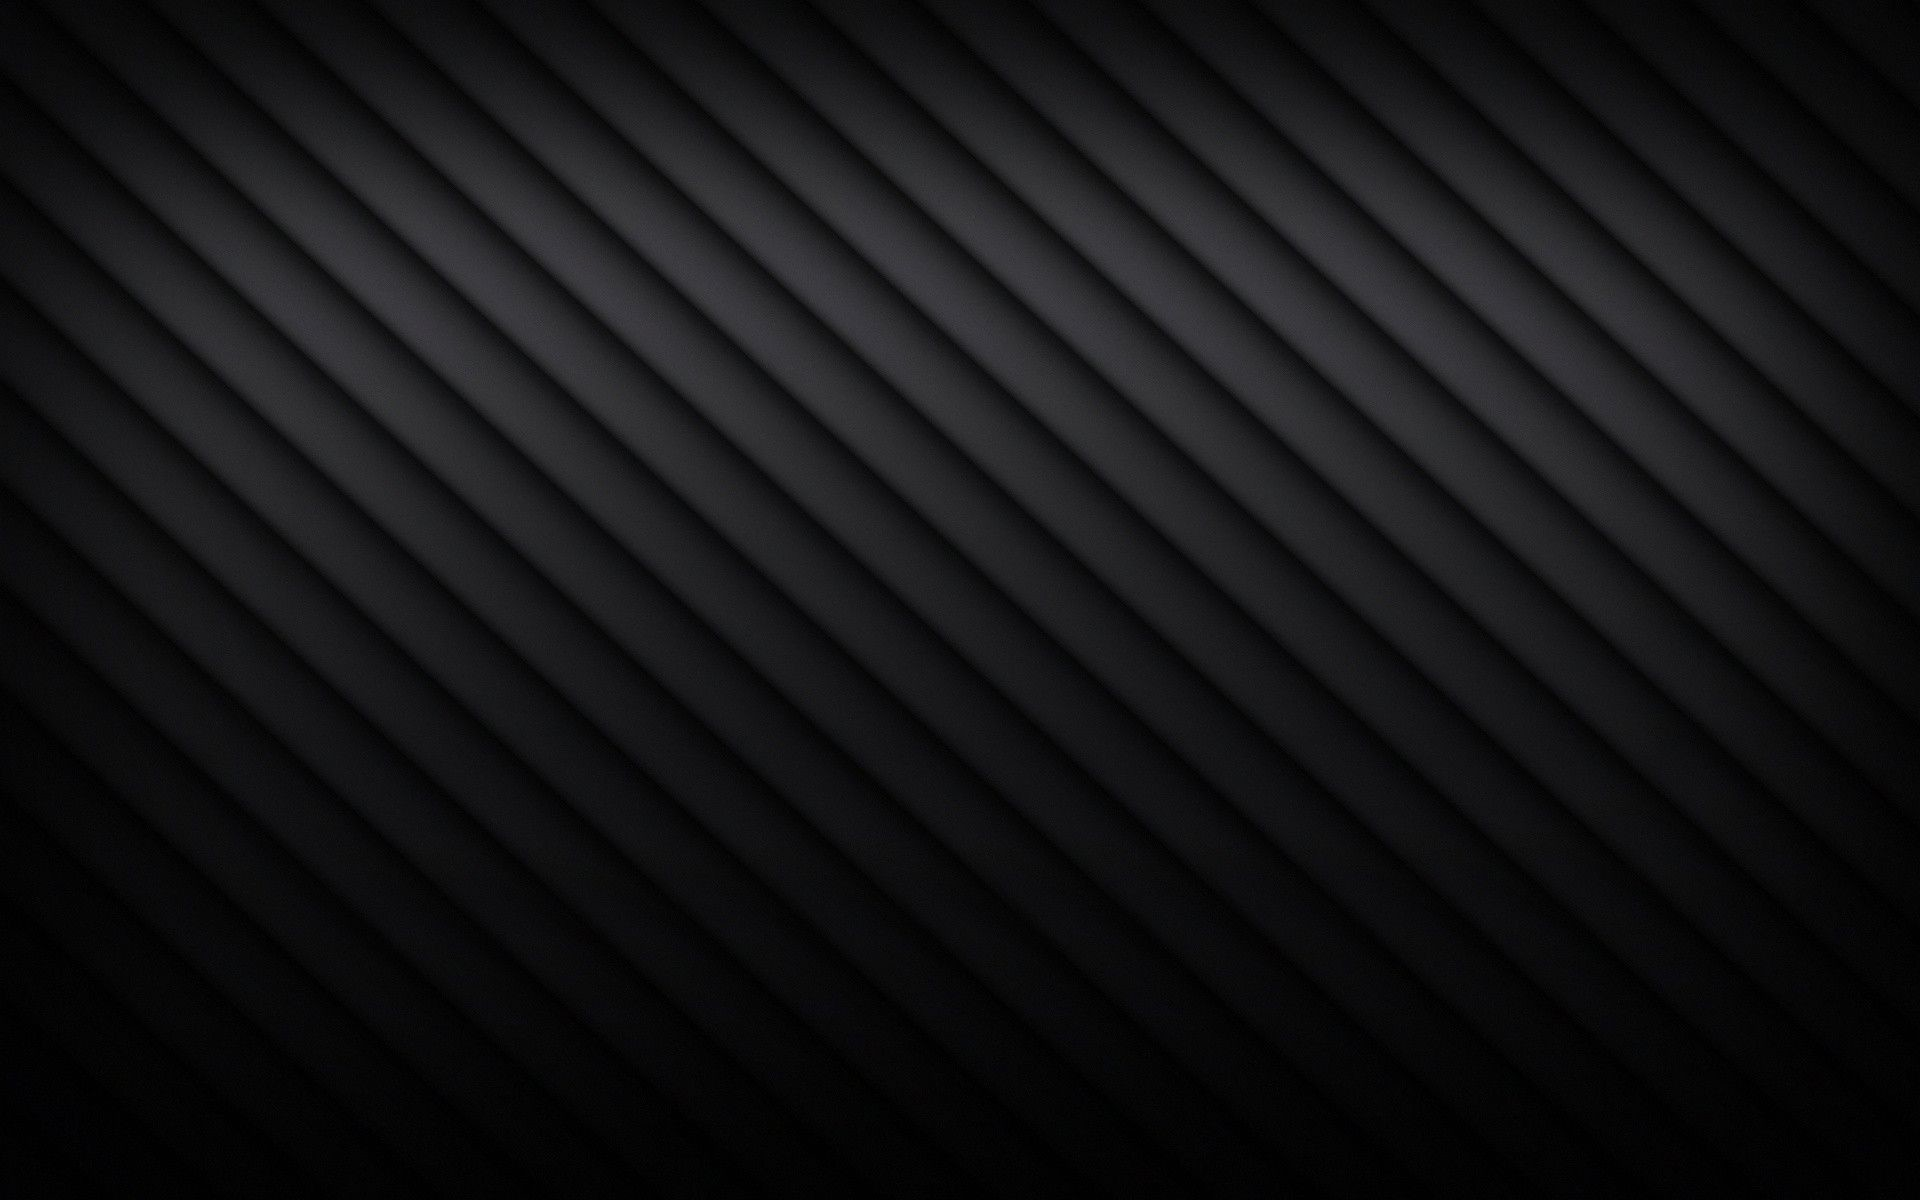 Black Abstract Wallpaper Background